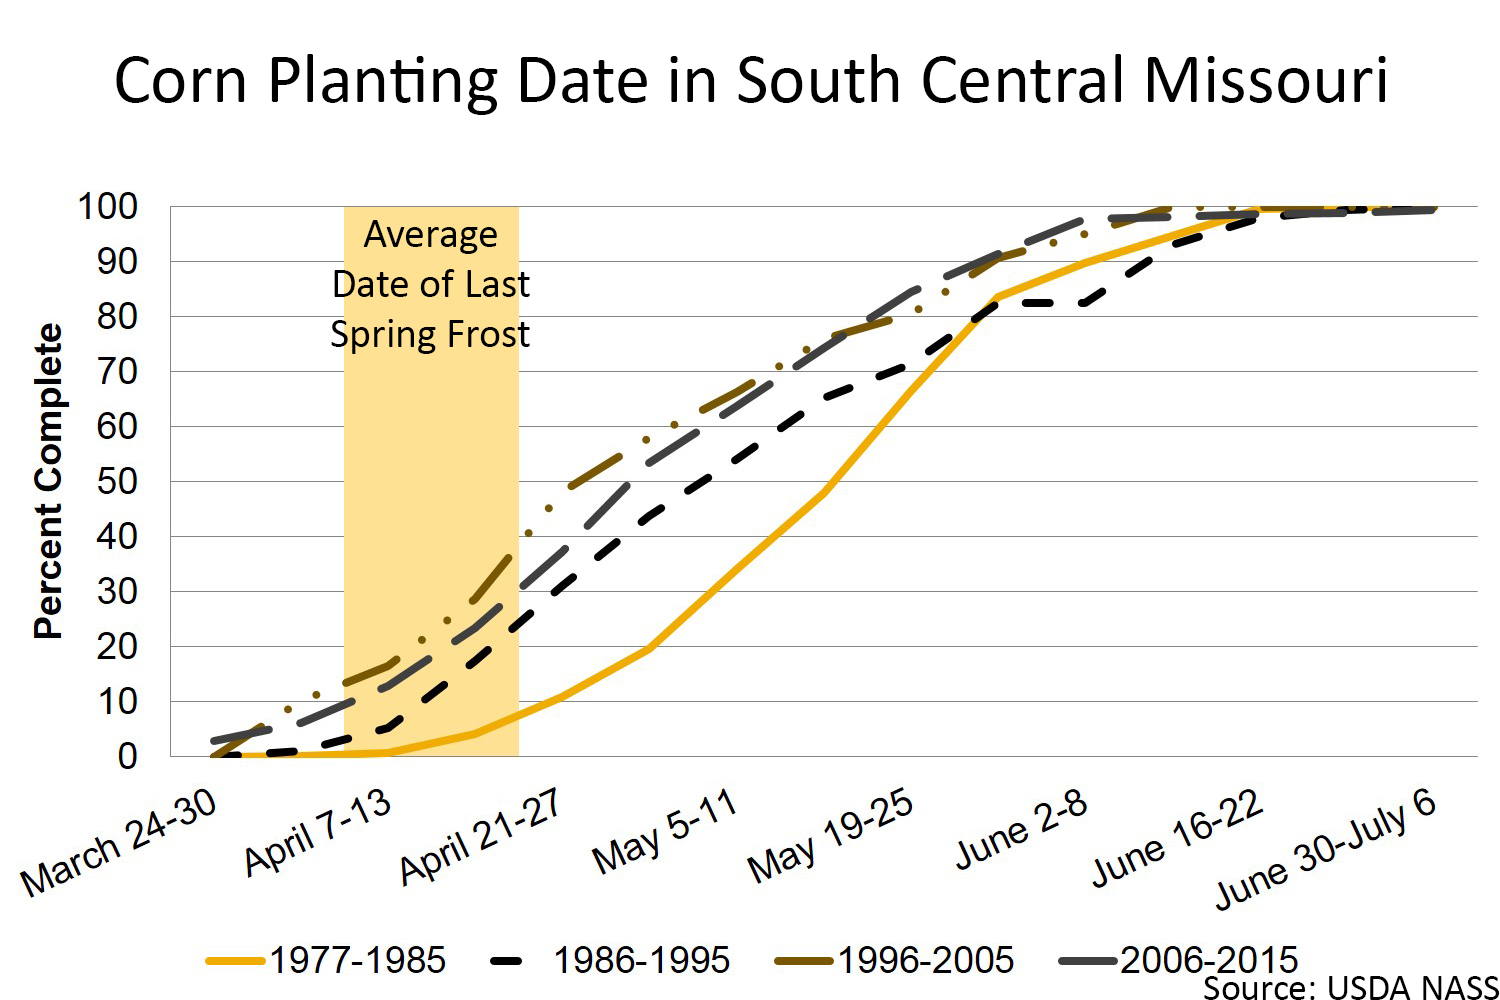 Corn planting date in south central Missouri chart